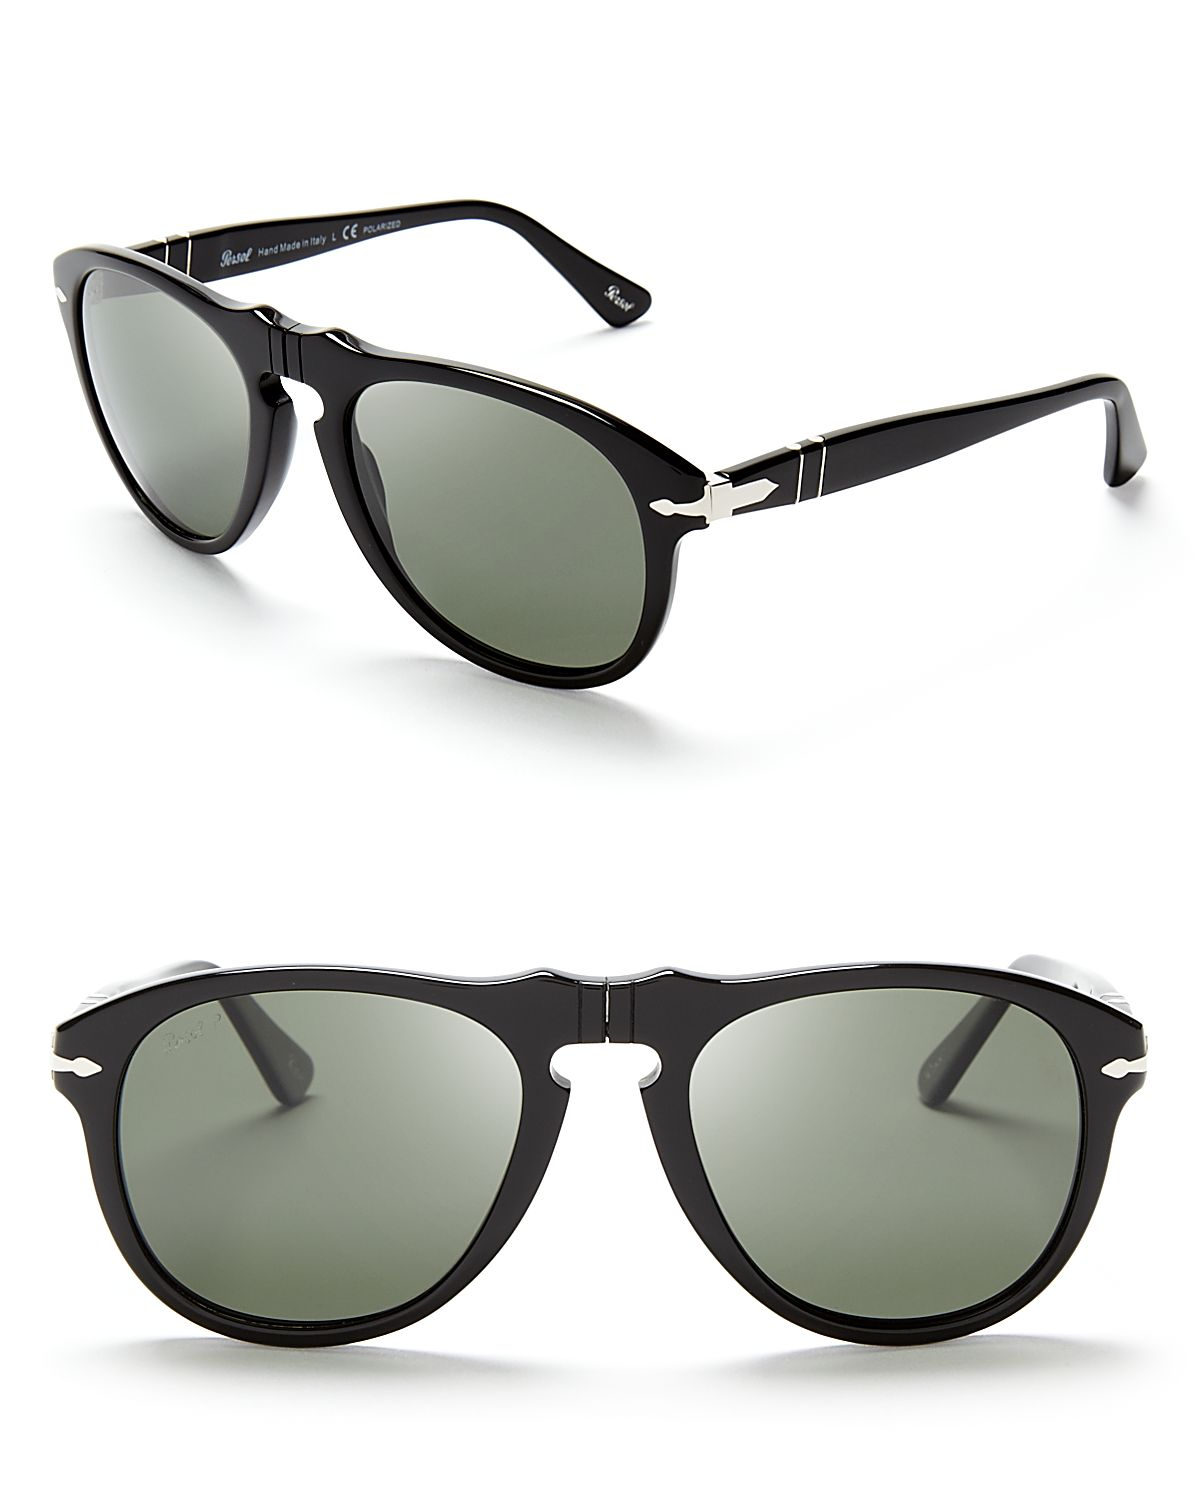 59483cc242 Lyst - Persol Suprema Polarized Retro Keyhole Sunglasses in Black ...